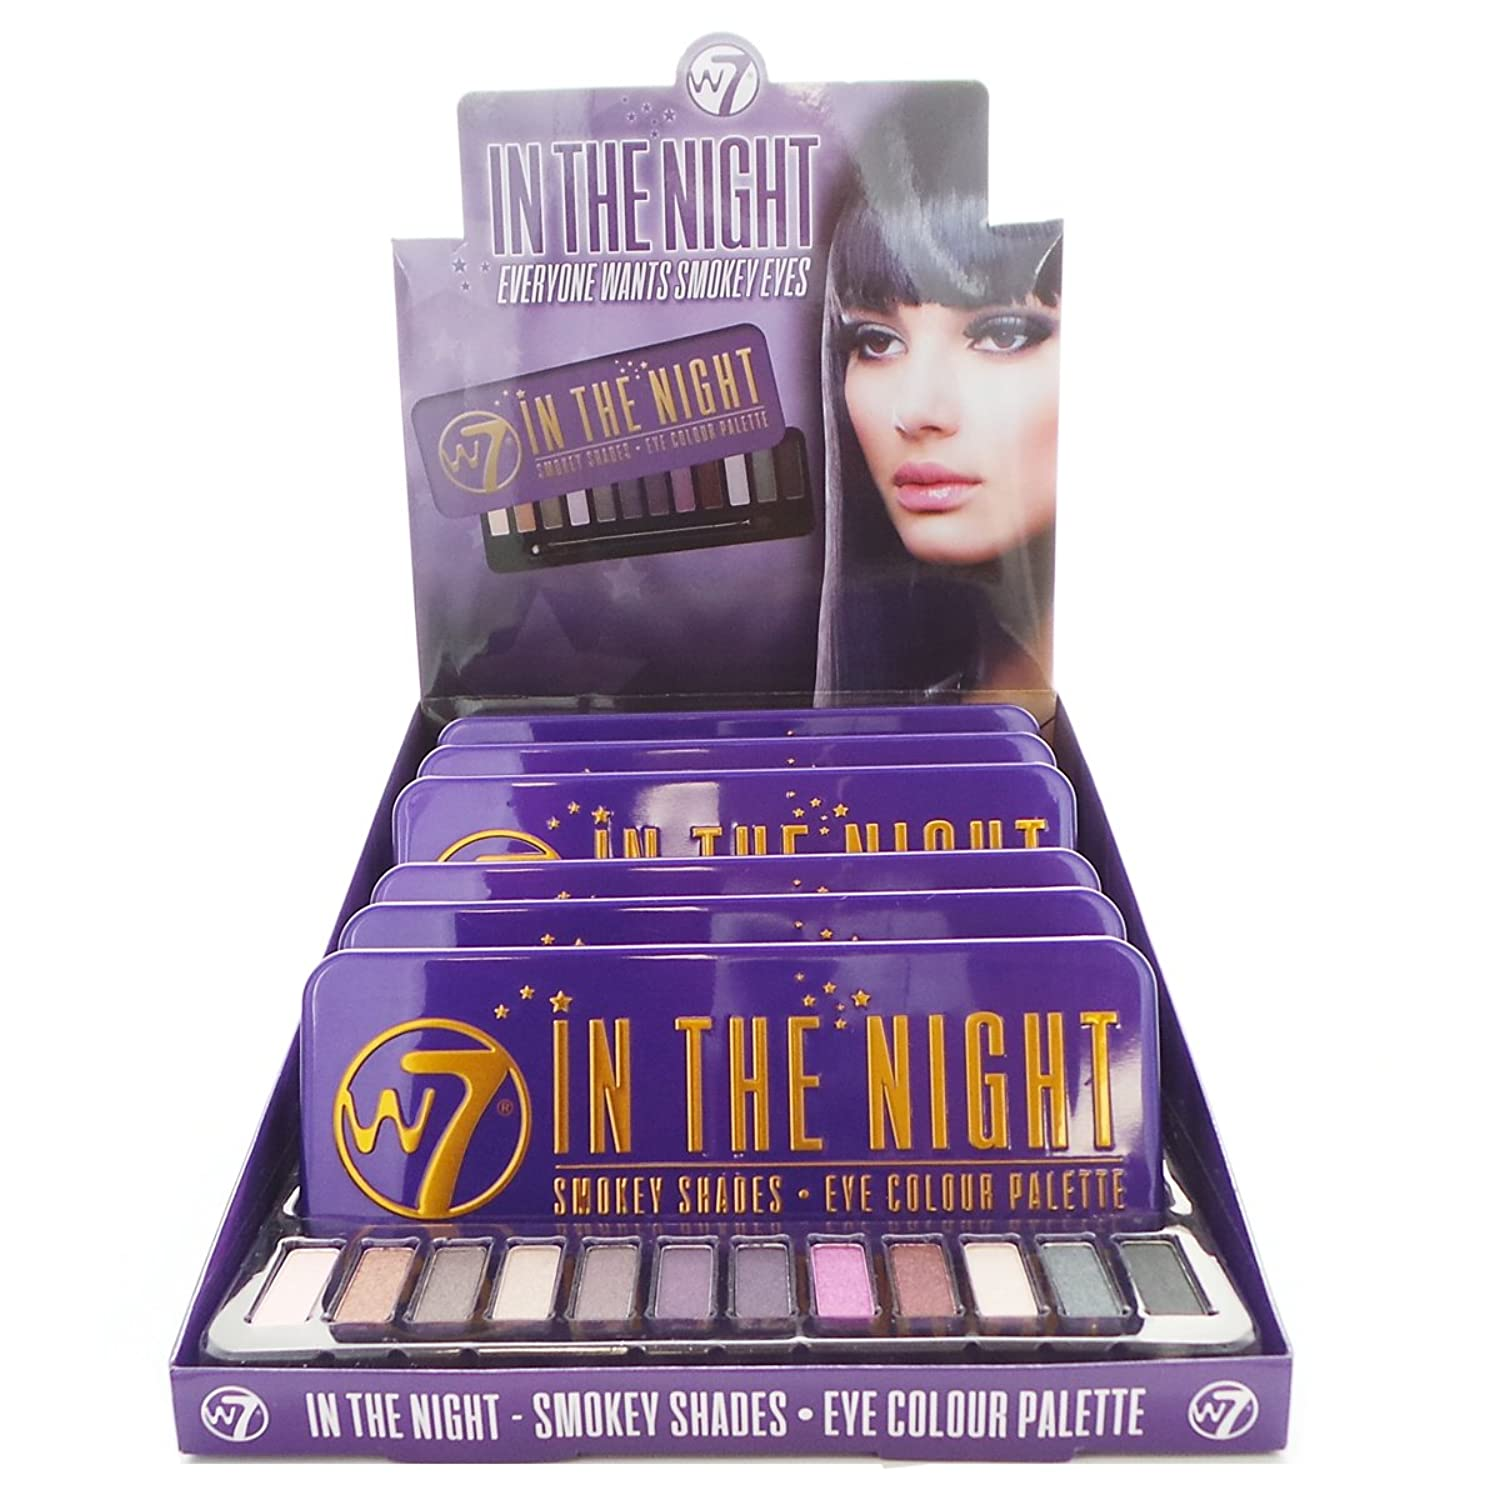 W7 In The Night Smokey Shades Eye Colour Palette Display Set, 6 Pieces plus Display Tester (並行輸入品)